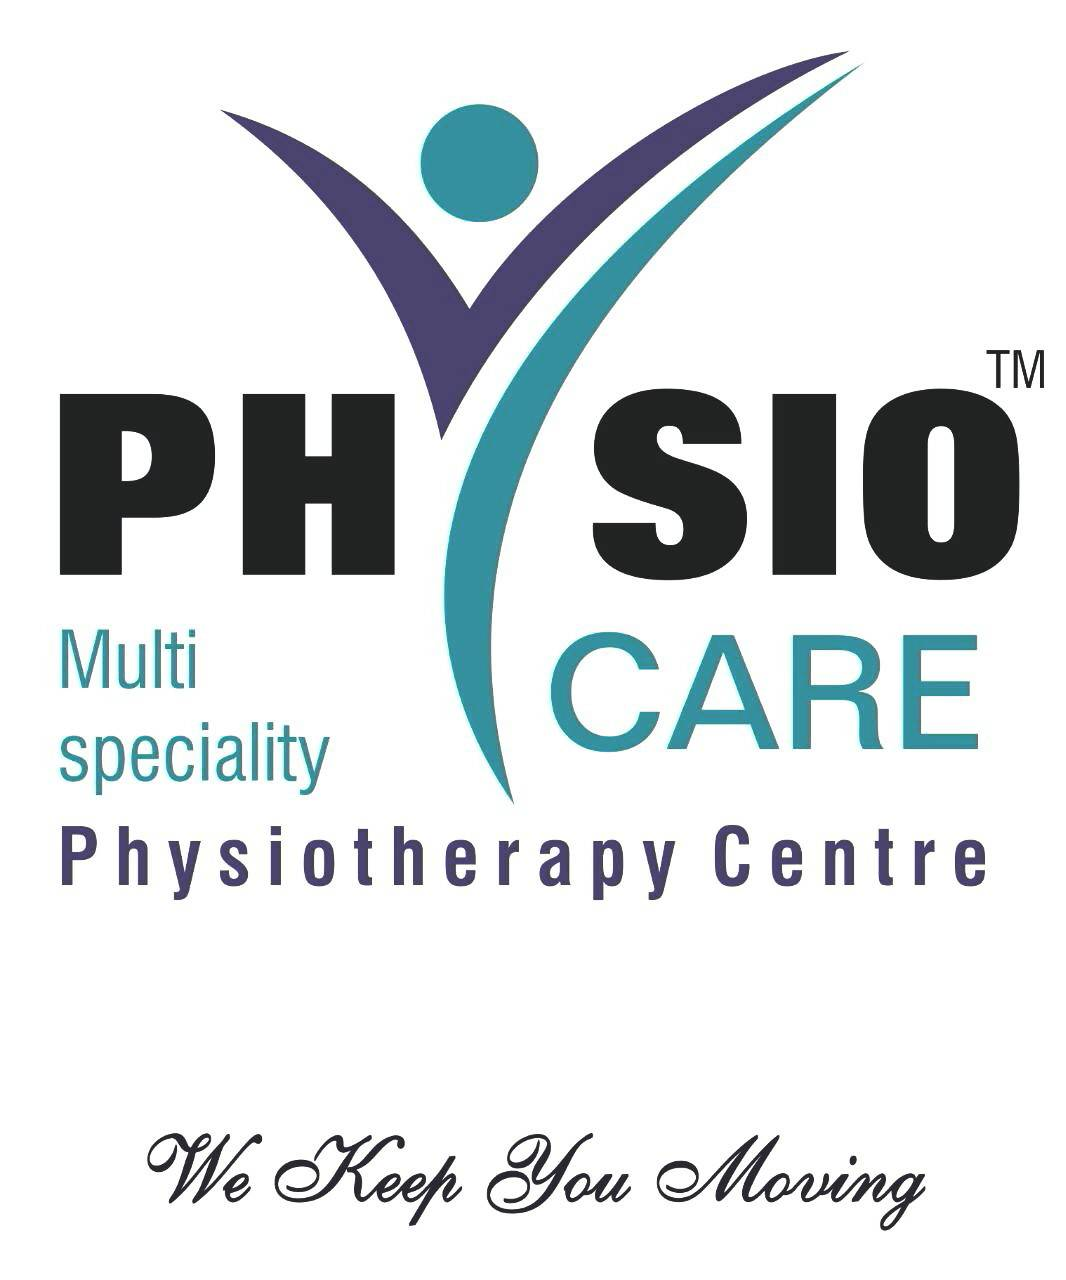 PHYSIOCARE MULTISPEC